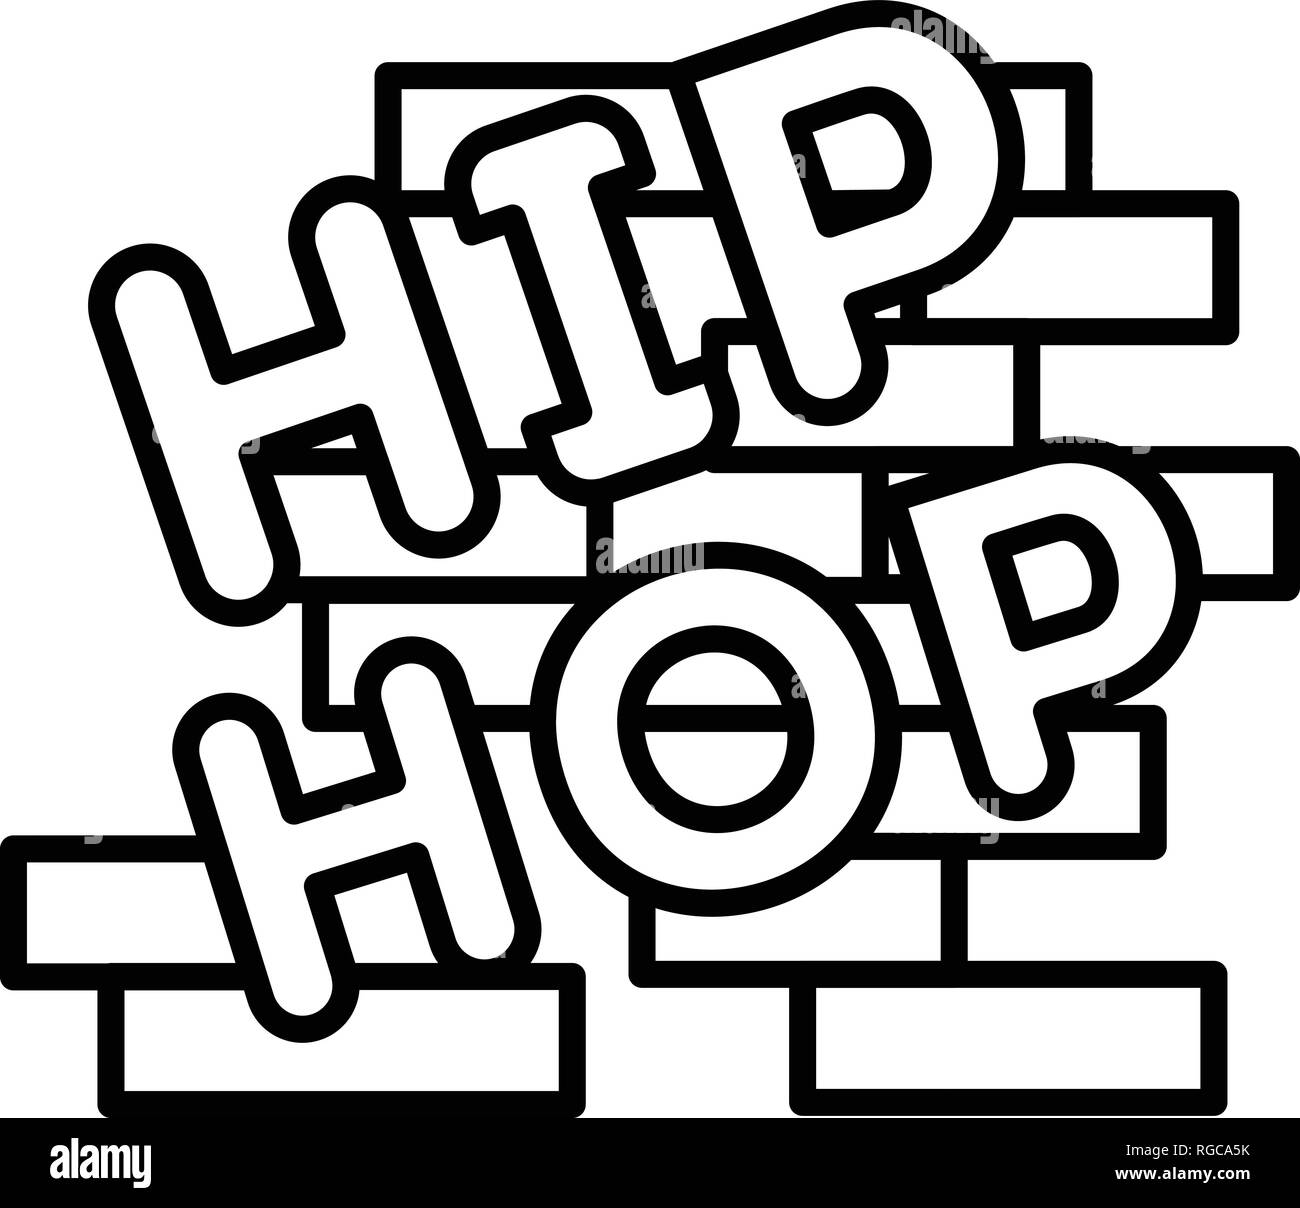 Hip hop on brick wall icon, outline style Stock Vector